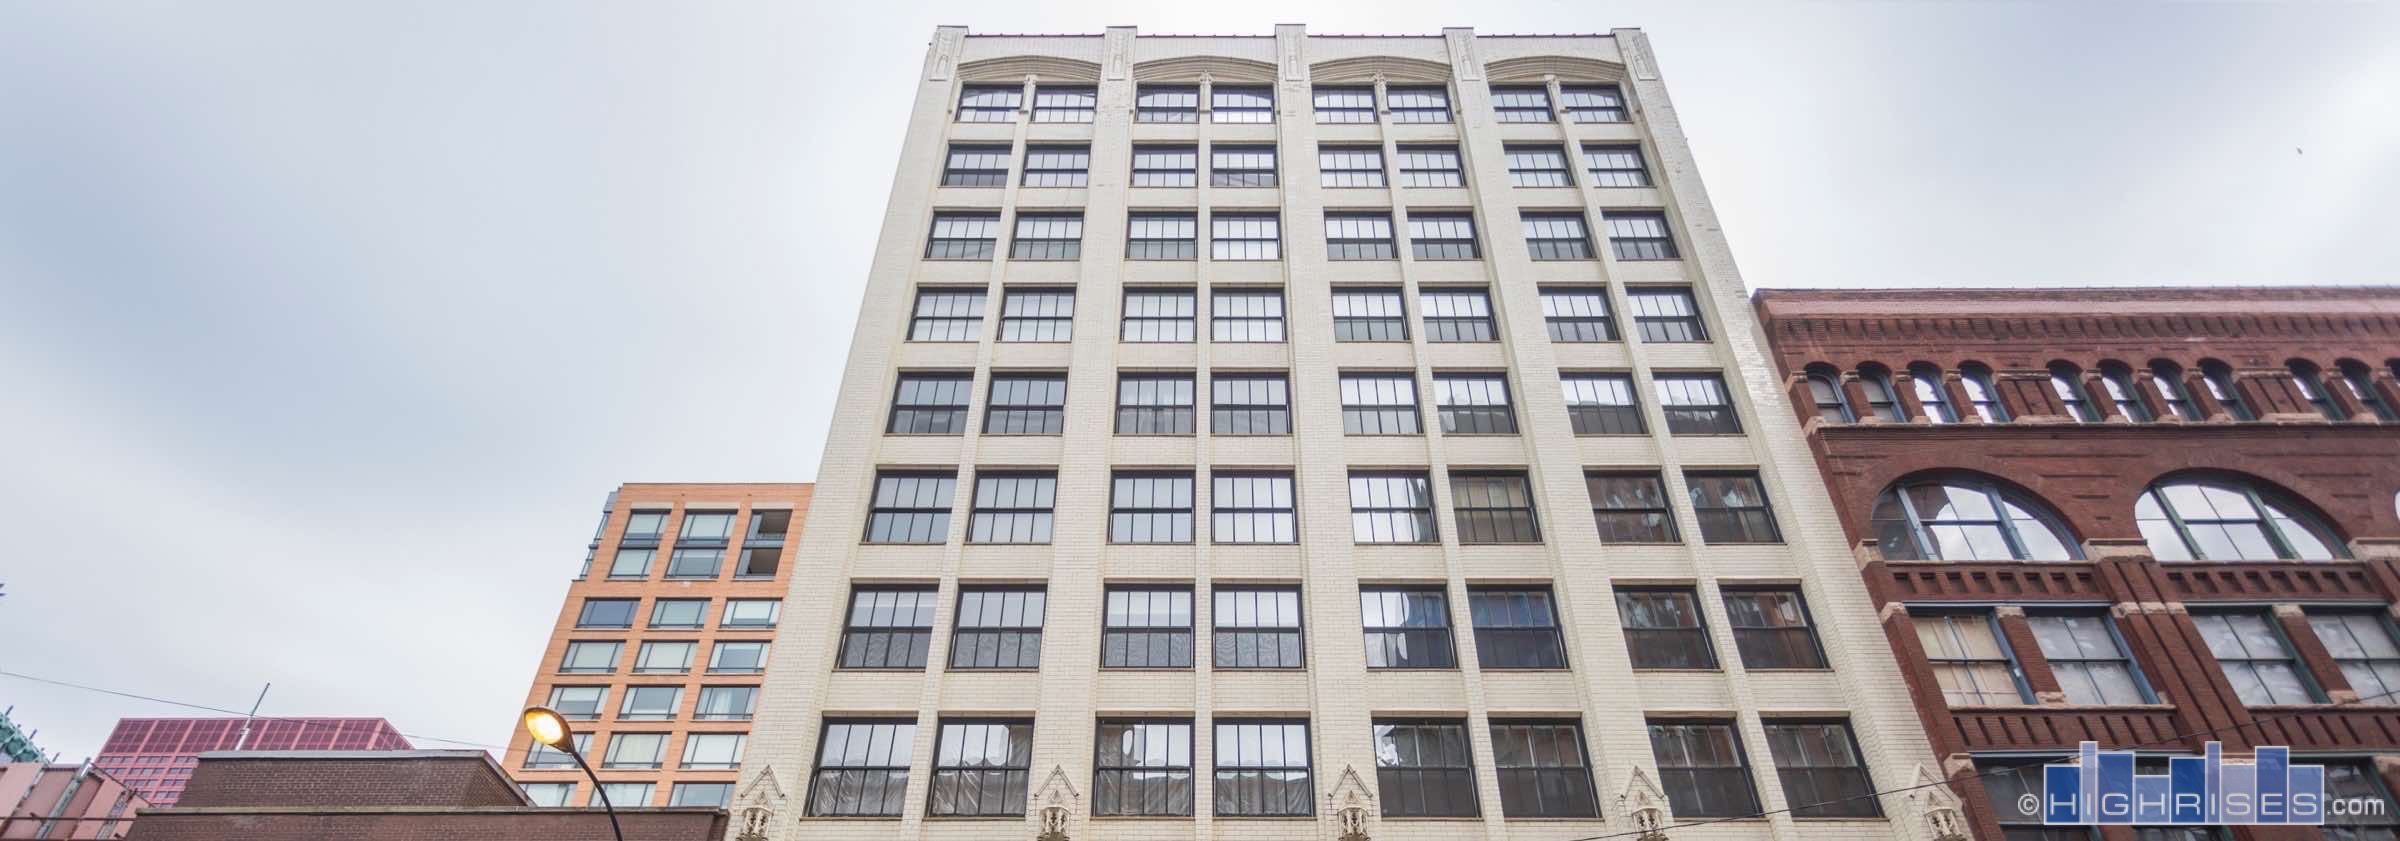 Peterson Lofts